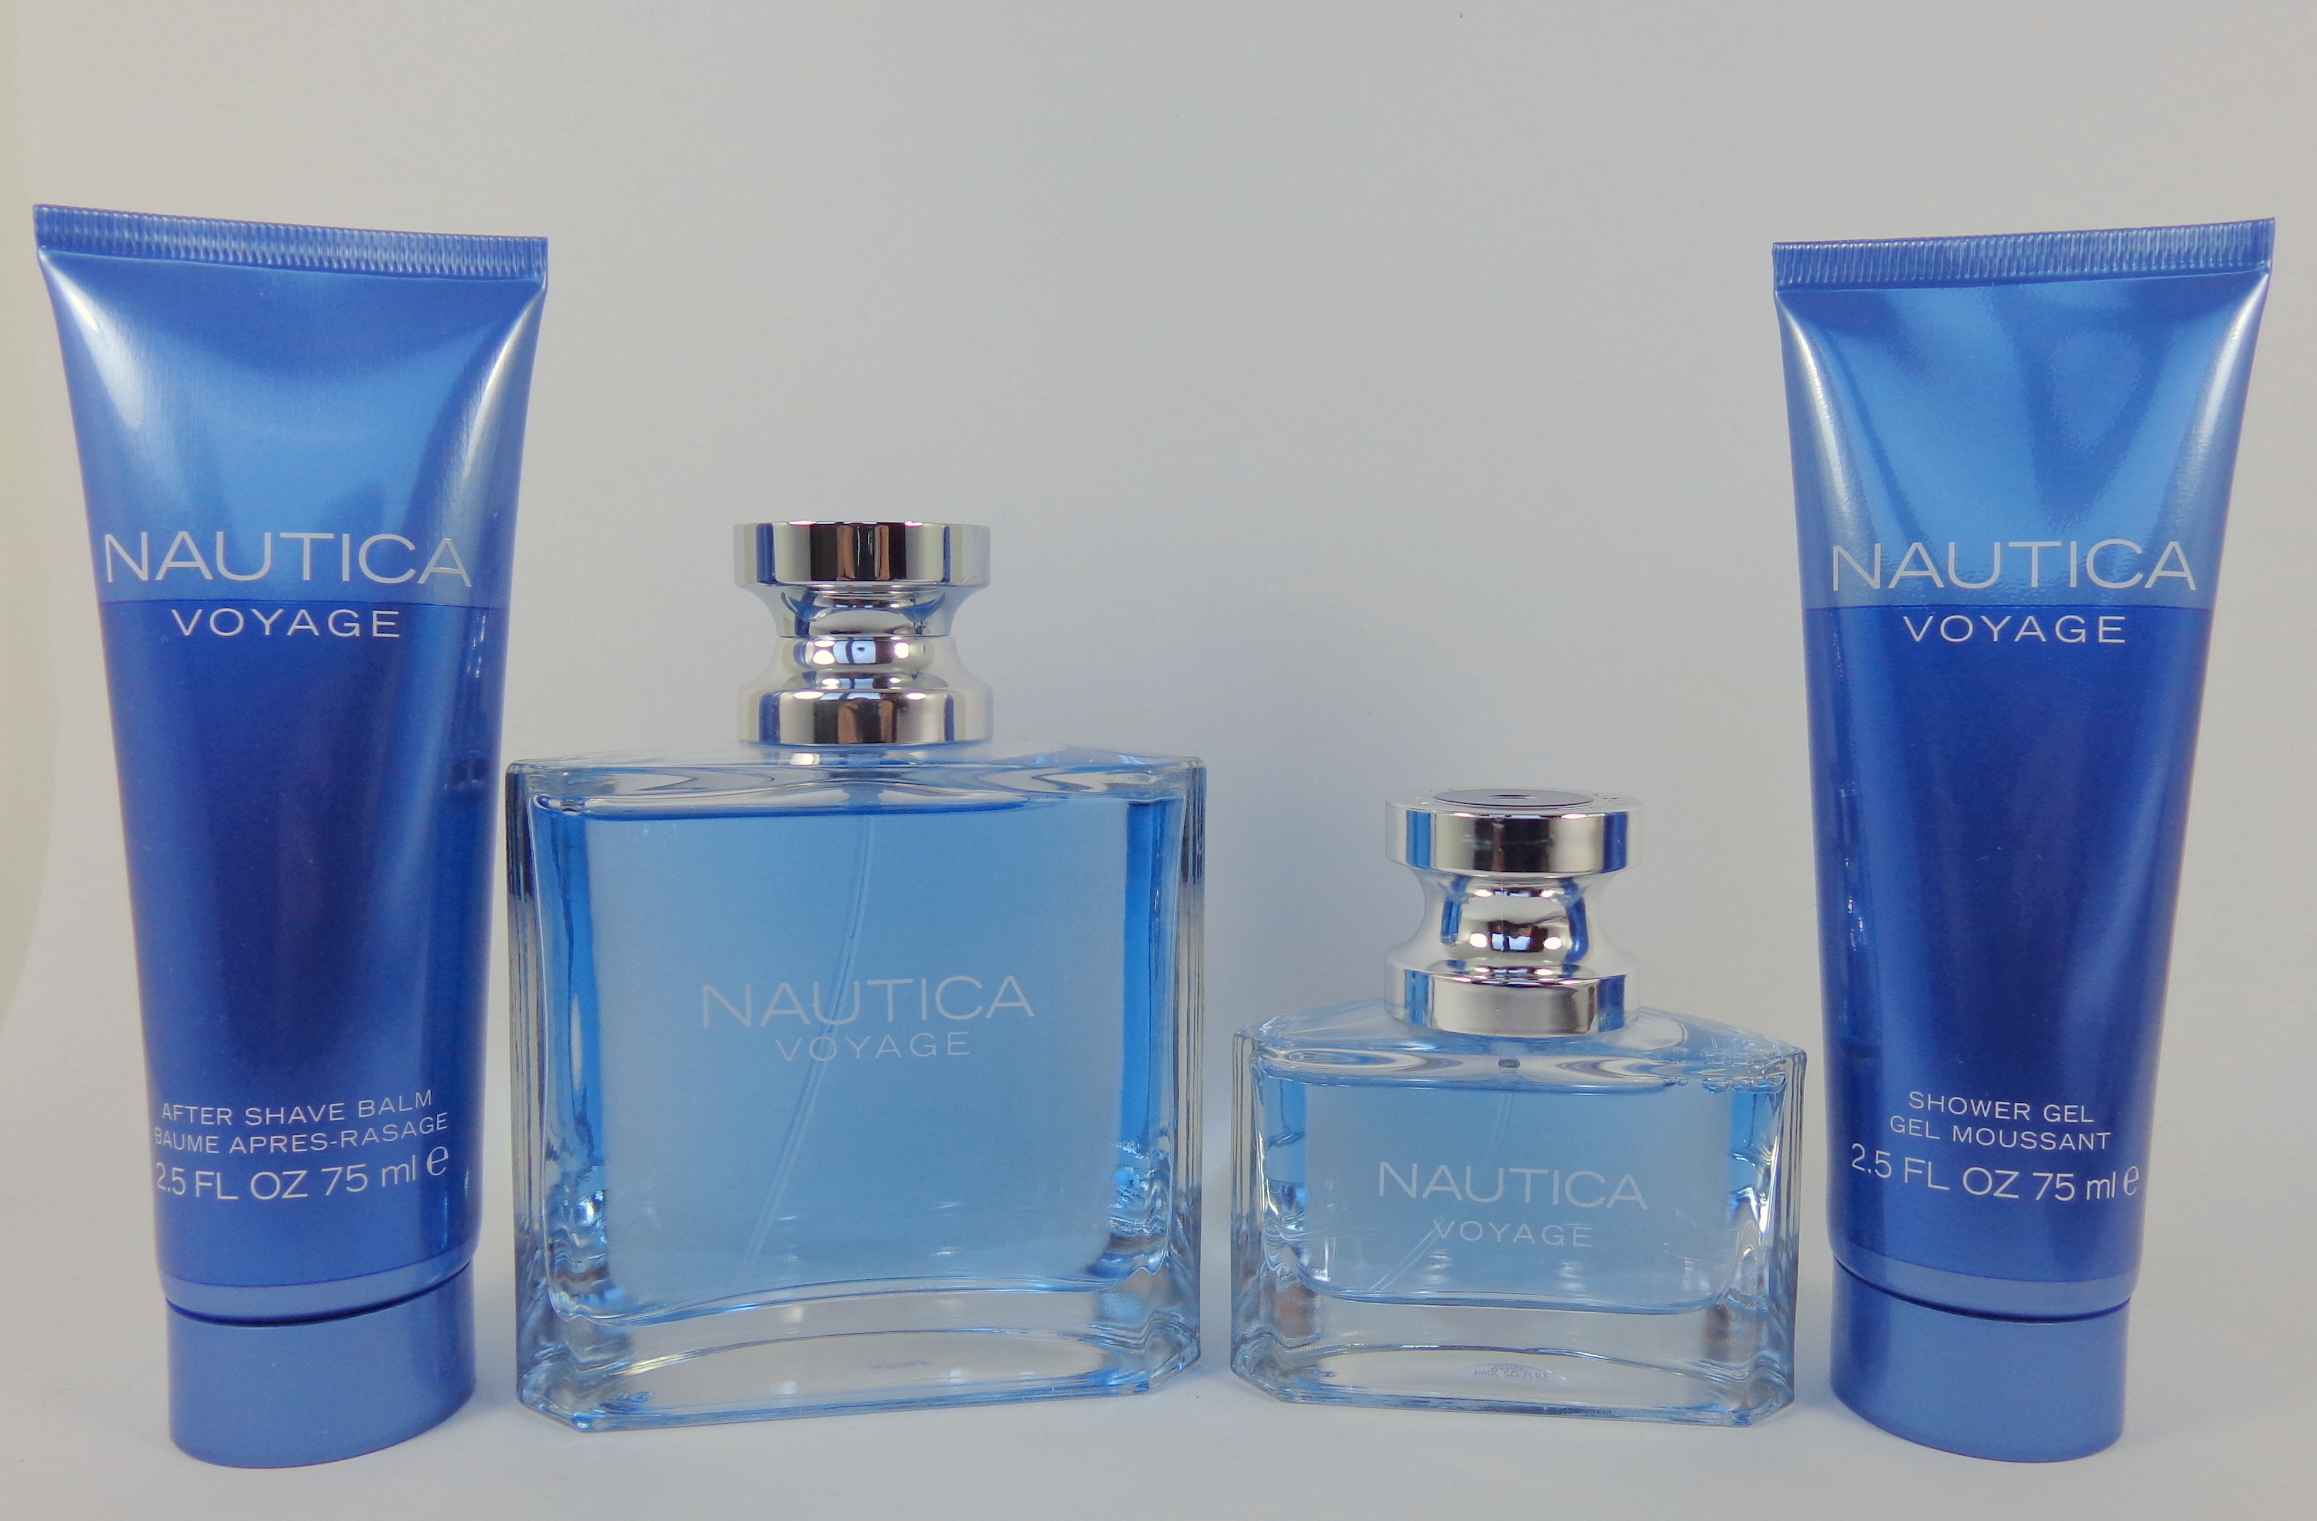 Nautica Voyage Gift Set for Men #HolidayGiftGuide - My Highest Self